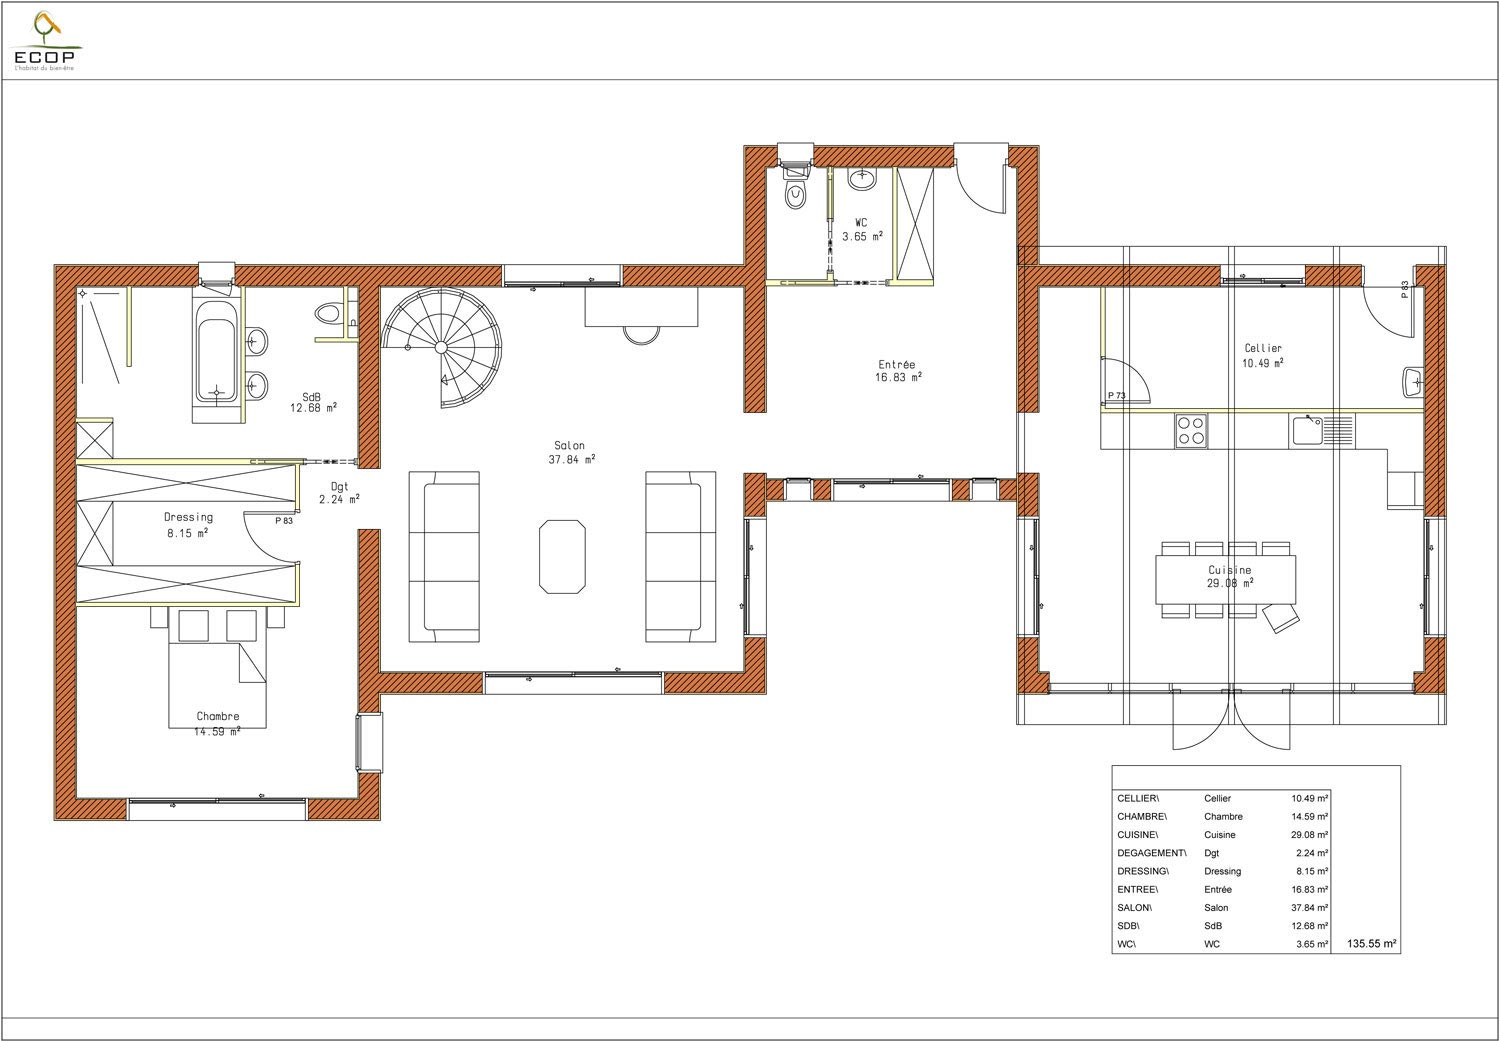 Plan de maison design plein pied joy studio design for Plan maison design